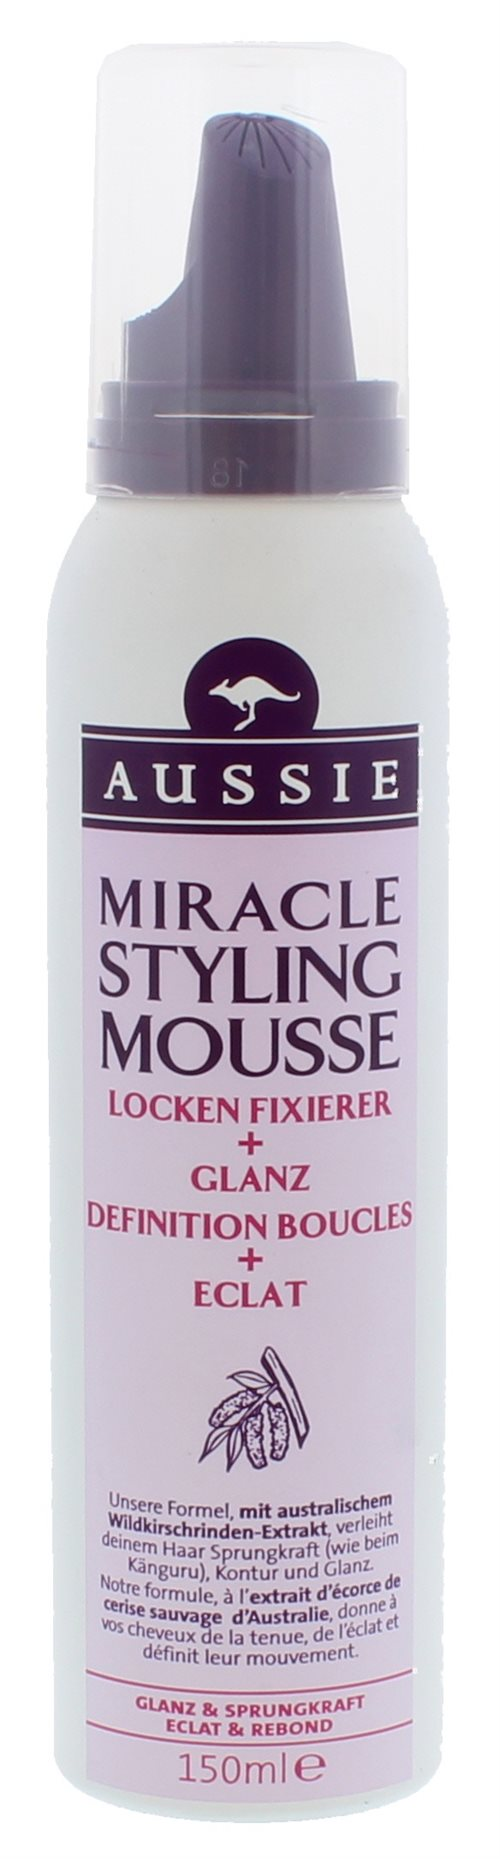 Aussie 150ml Mousse Turn Up The Curl